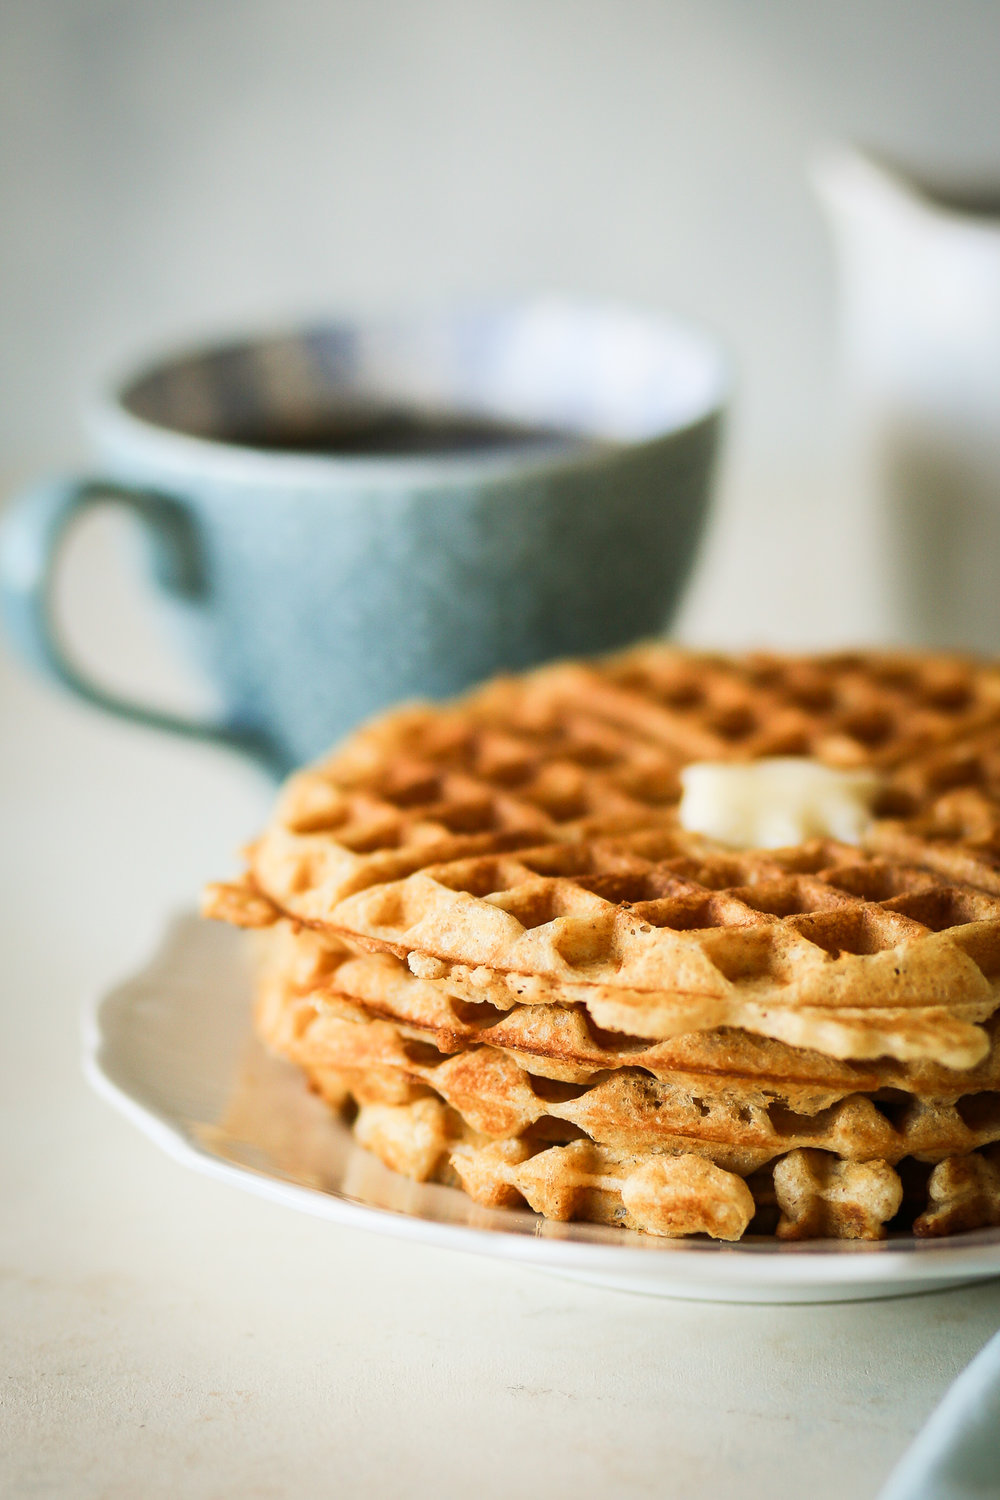 Brown Butter Vanilla Waffles | Set the Table #waffles #wafflerecipe #brownbutter #vanilla #breakfast #brunch #holidays #holidayrecipe